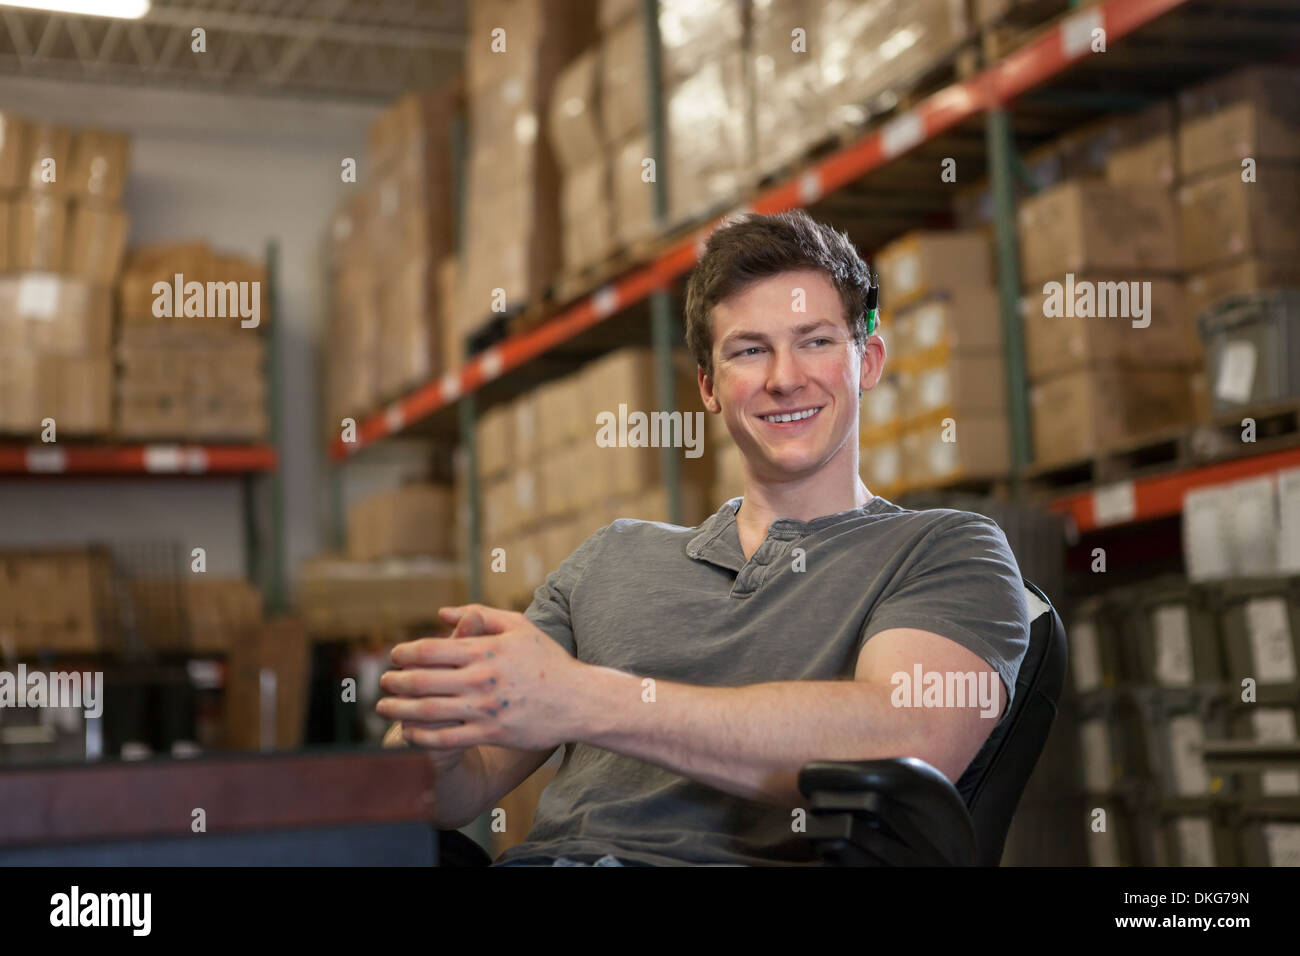 Worker sitting in warehouse - Stock Image